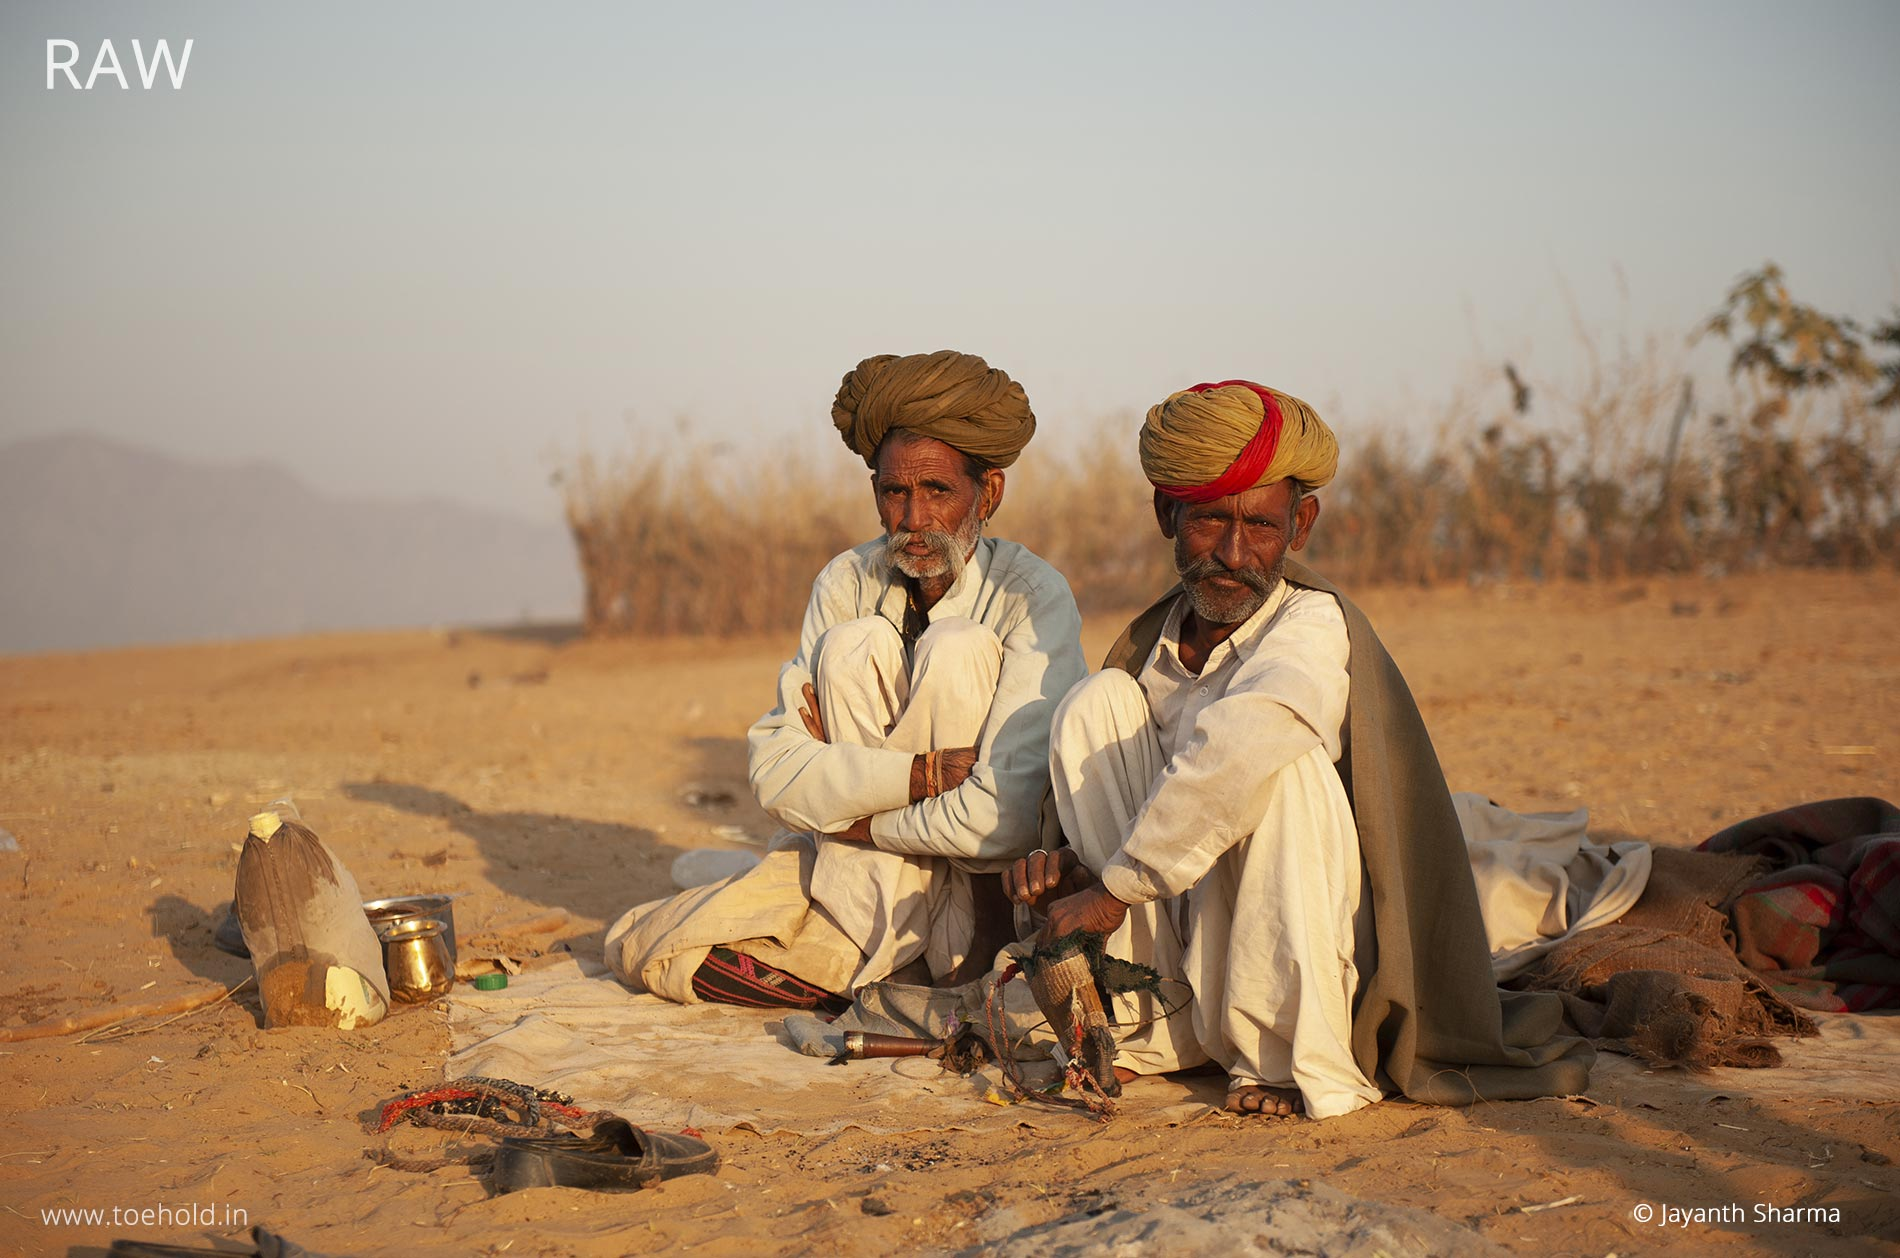 Pushkar farmers raw